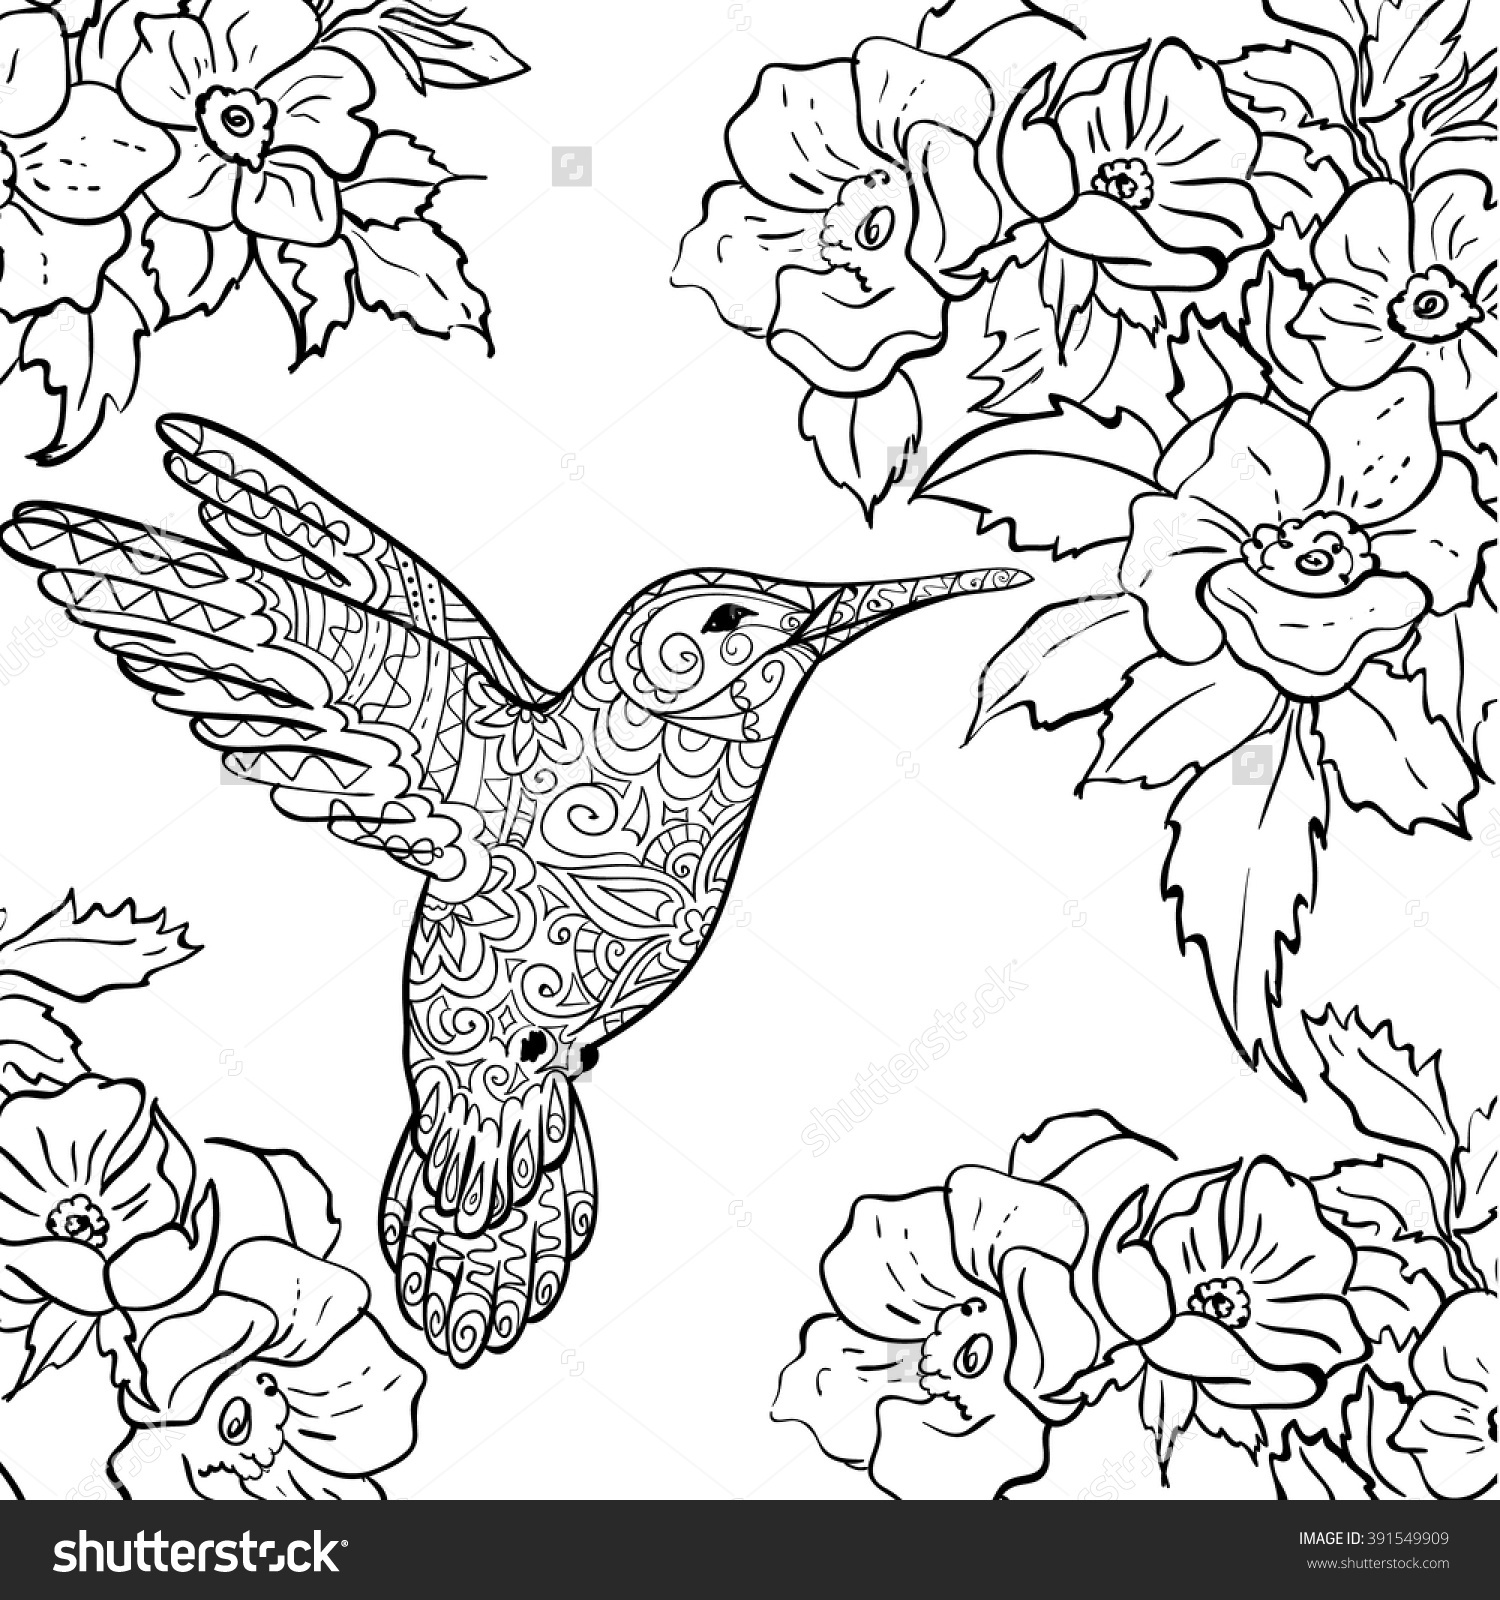 1500x1600 Hummingbird Coloring Pages